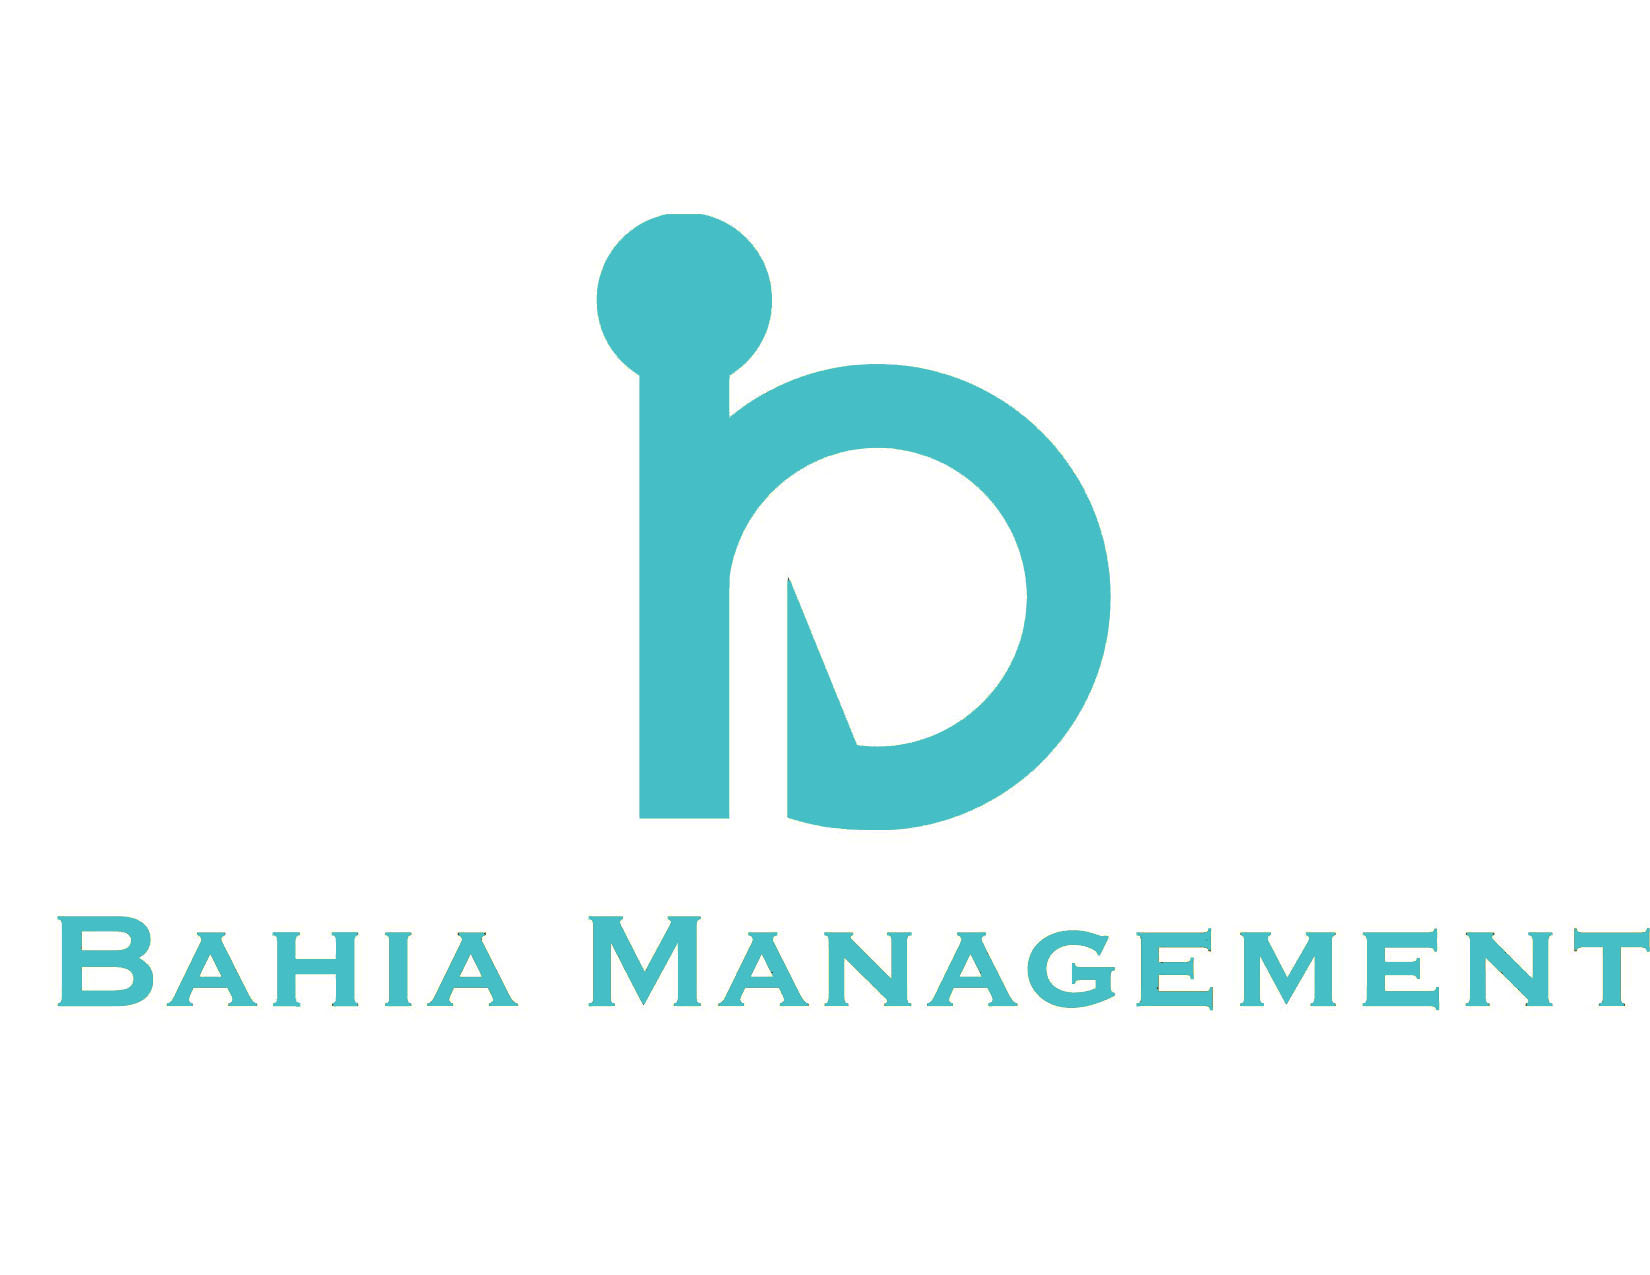 Bahia Management